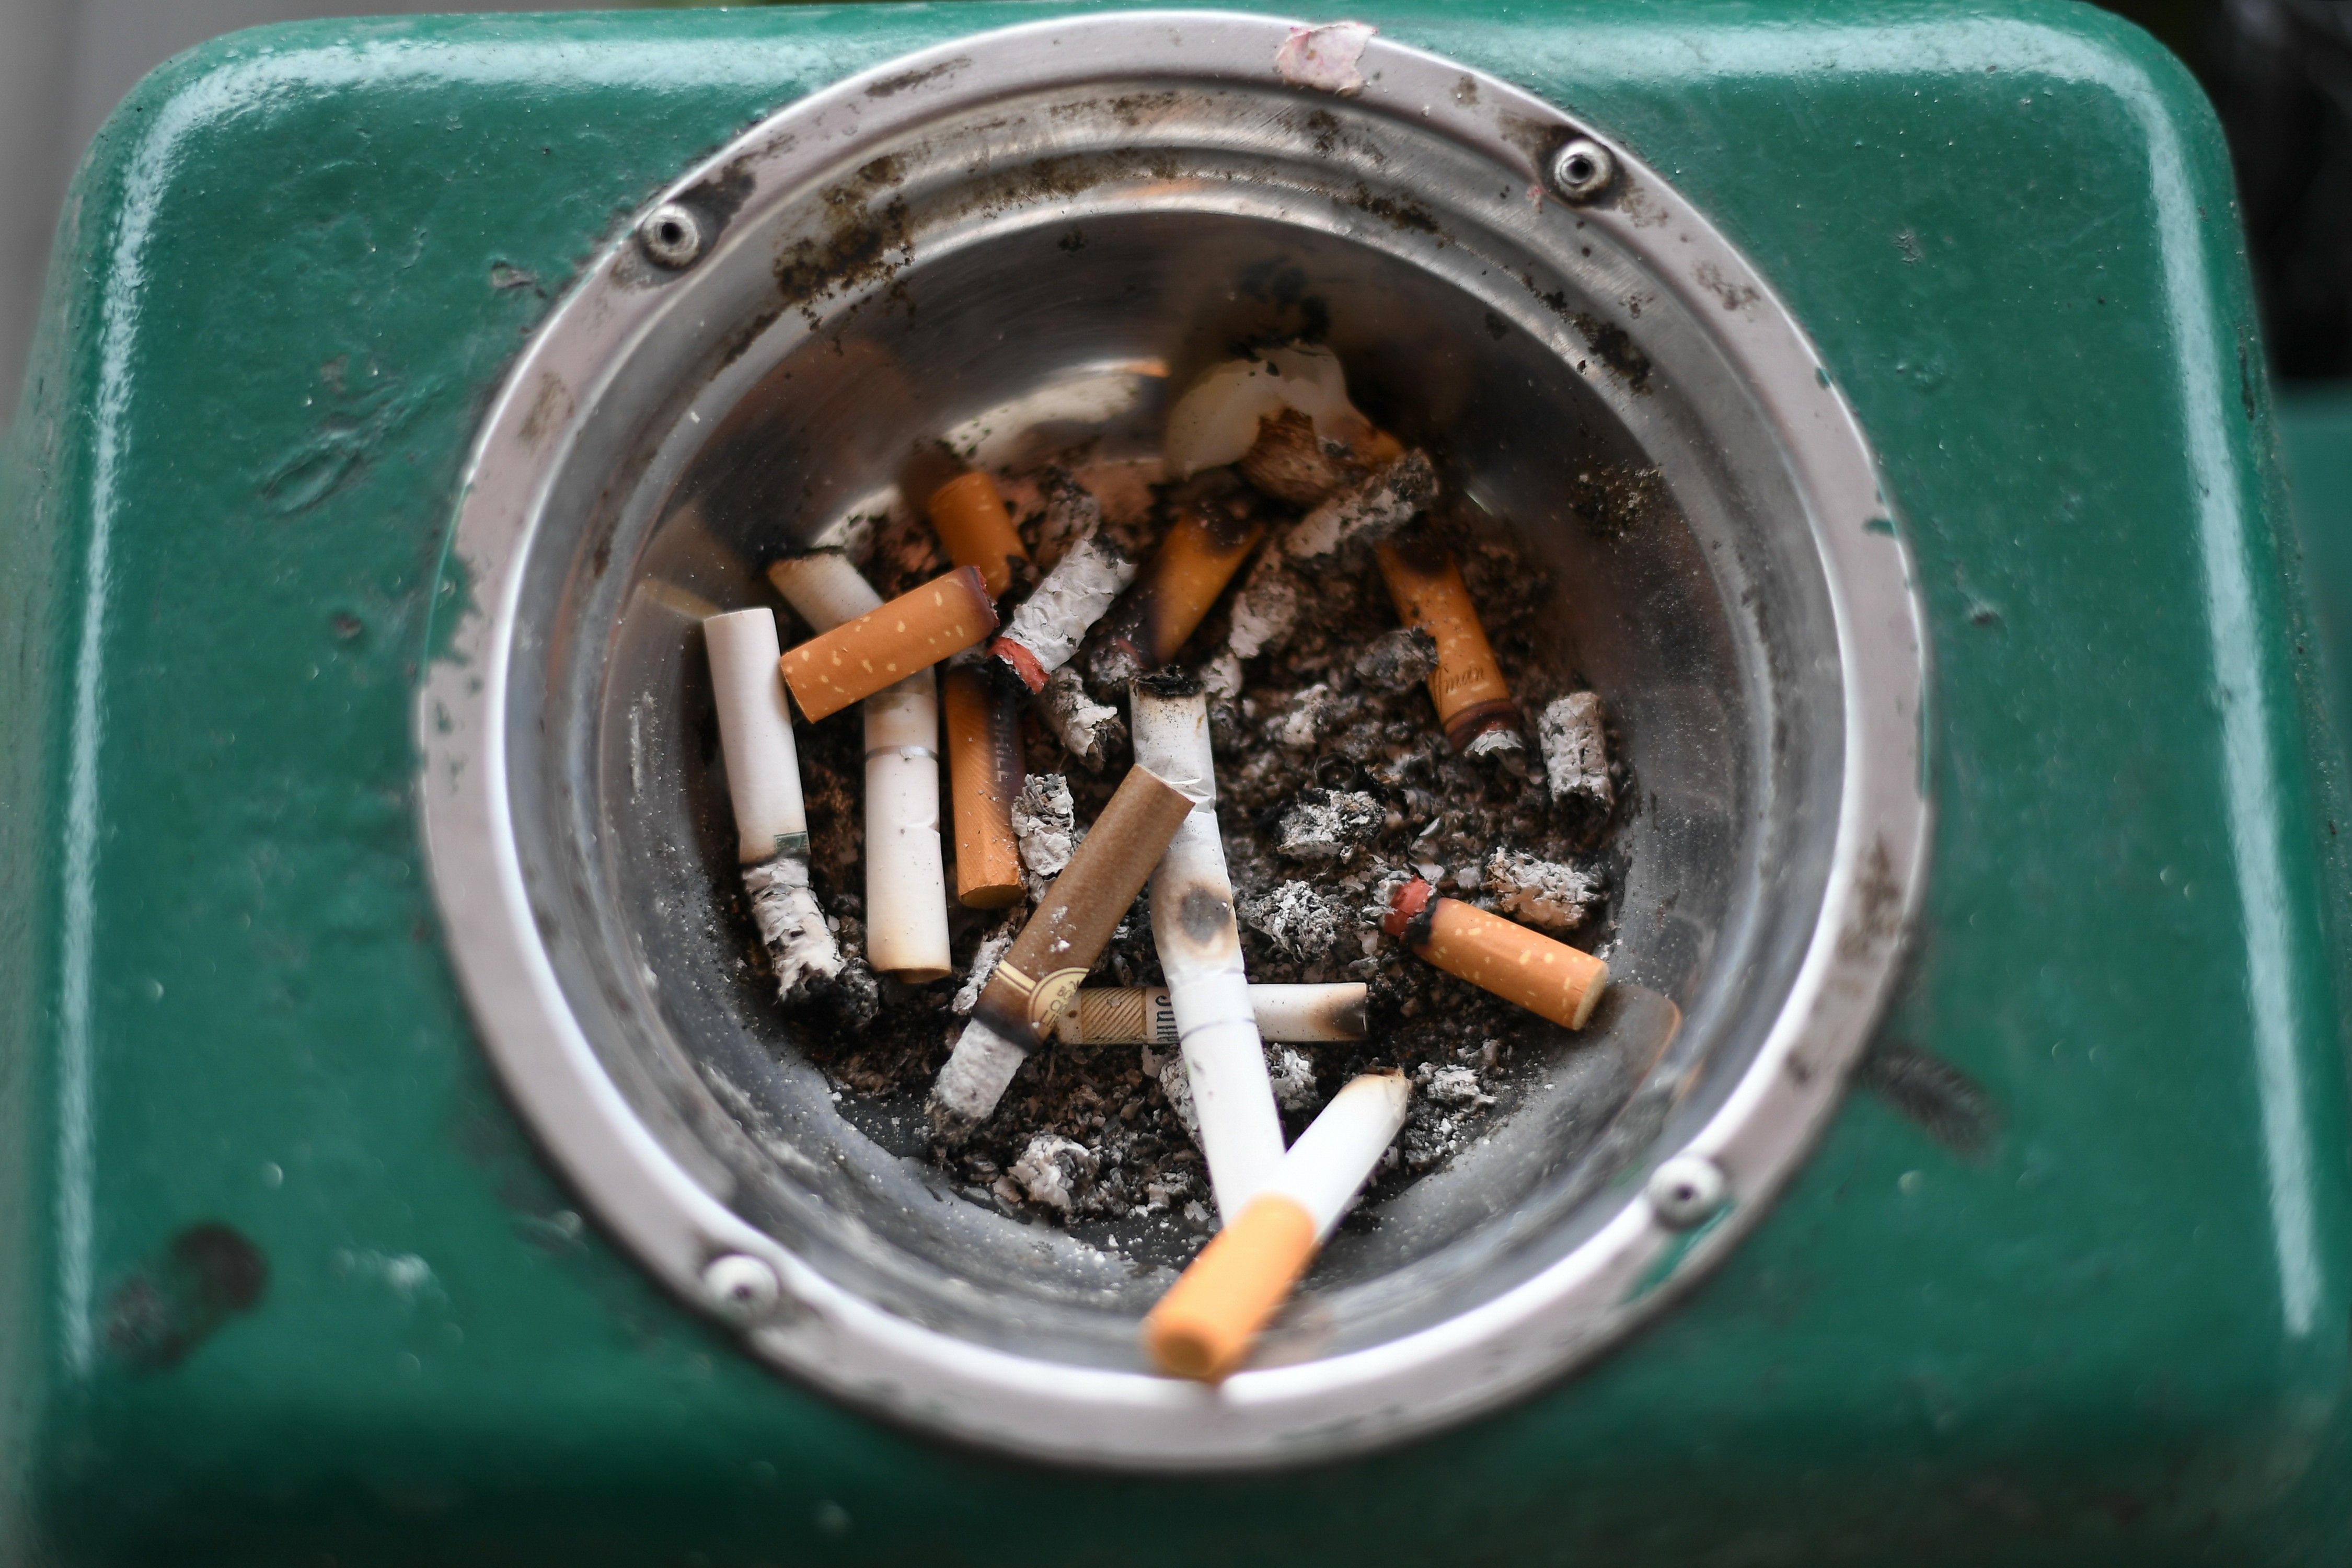 Malaysian smokers buy 1,000 packs of illegal cigarettes each